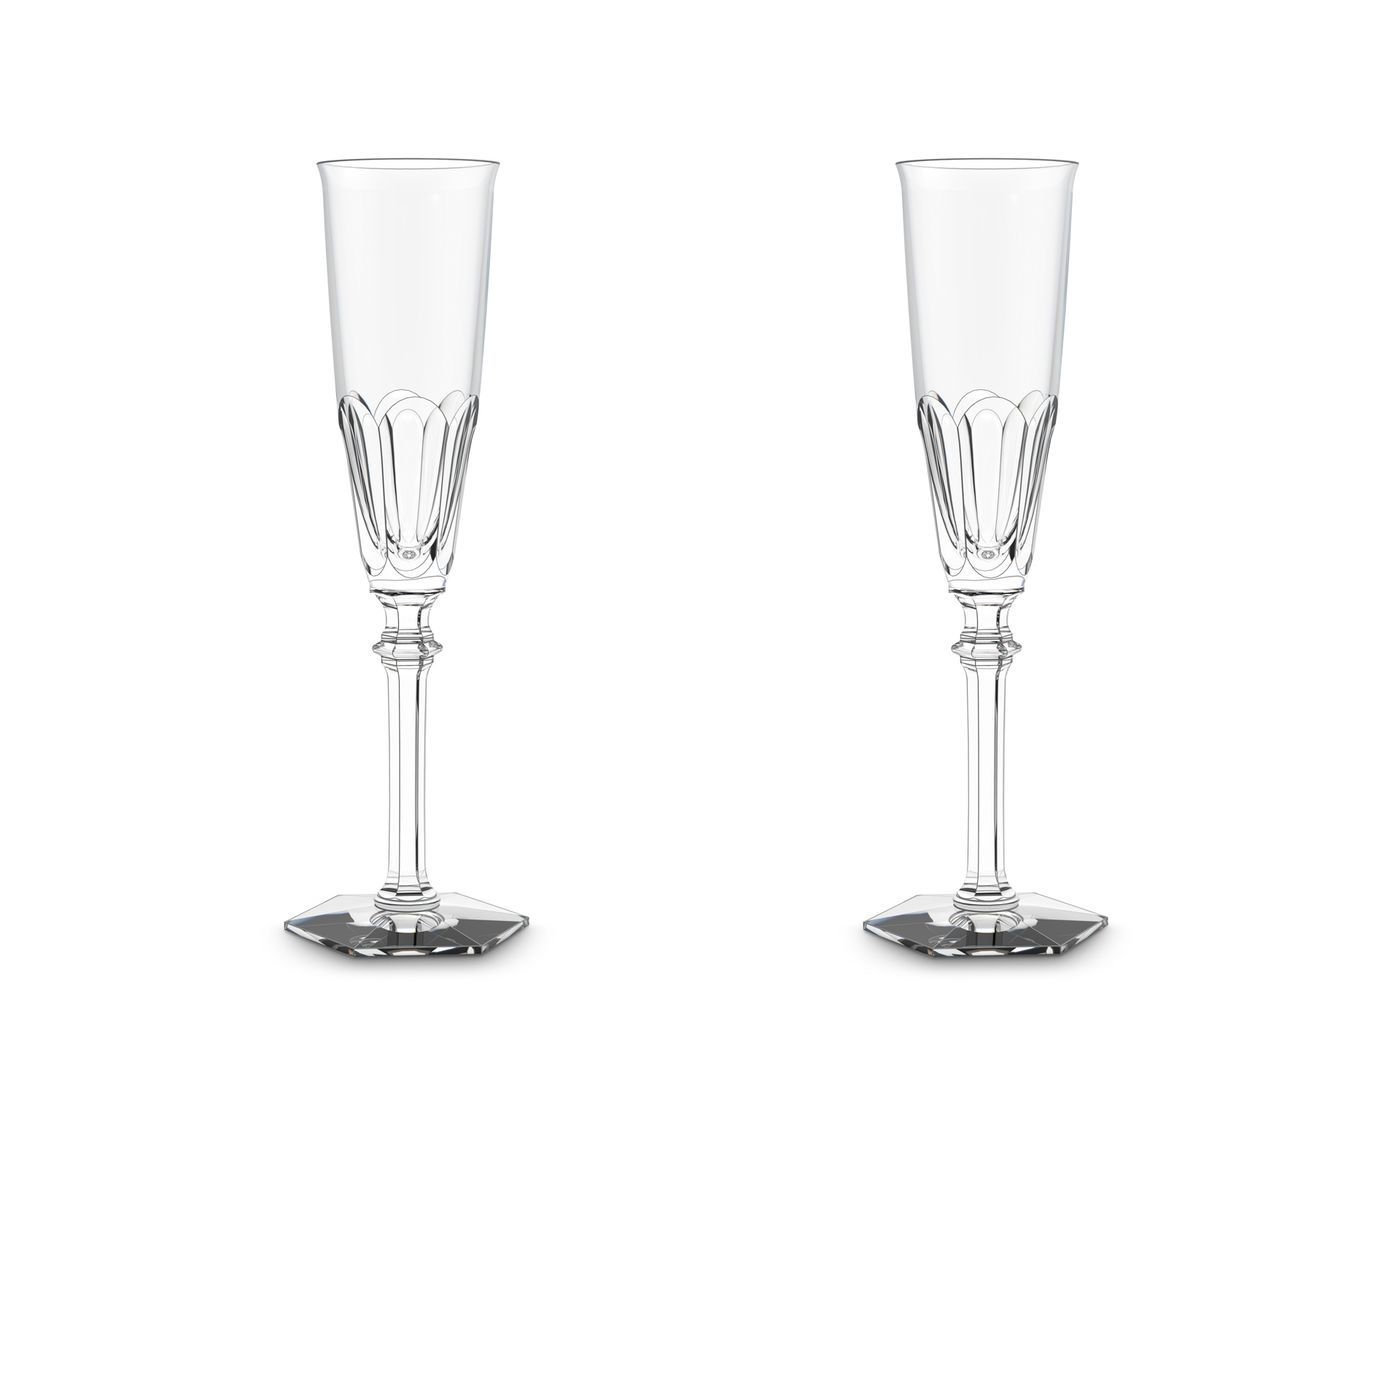 Harcourt eve flute | Flutes, Champagne flutes and Glass